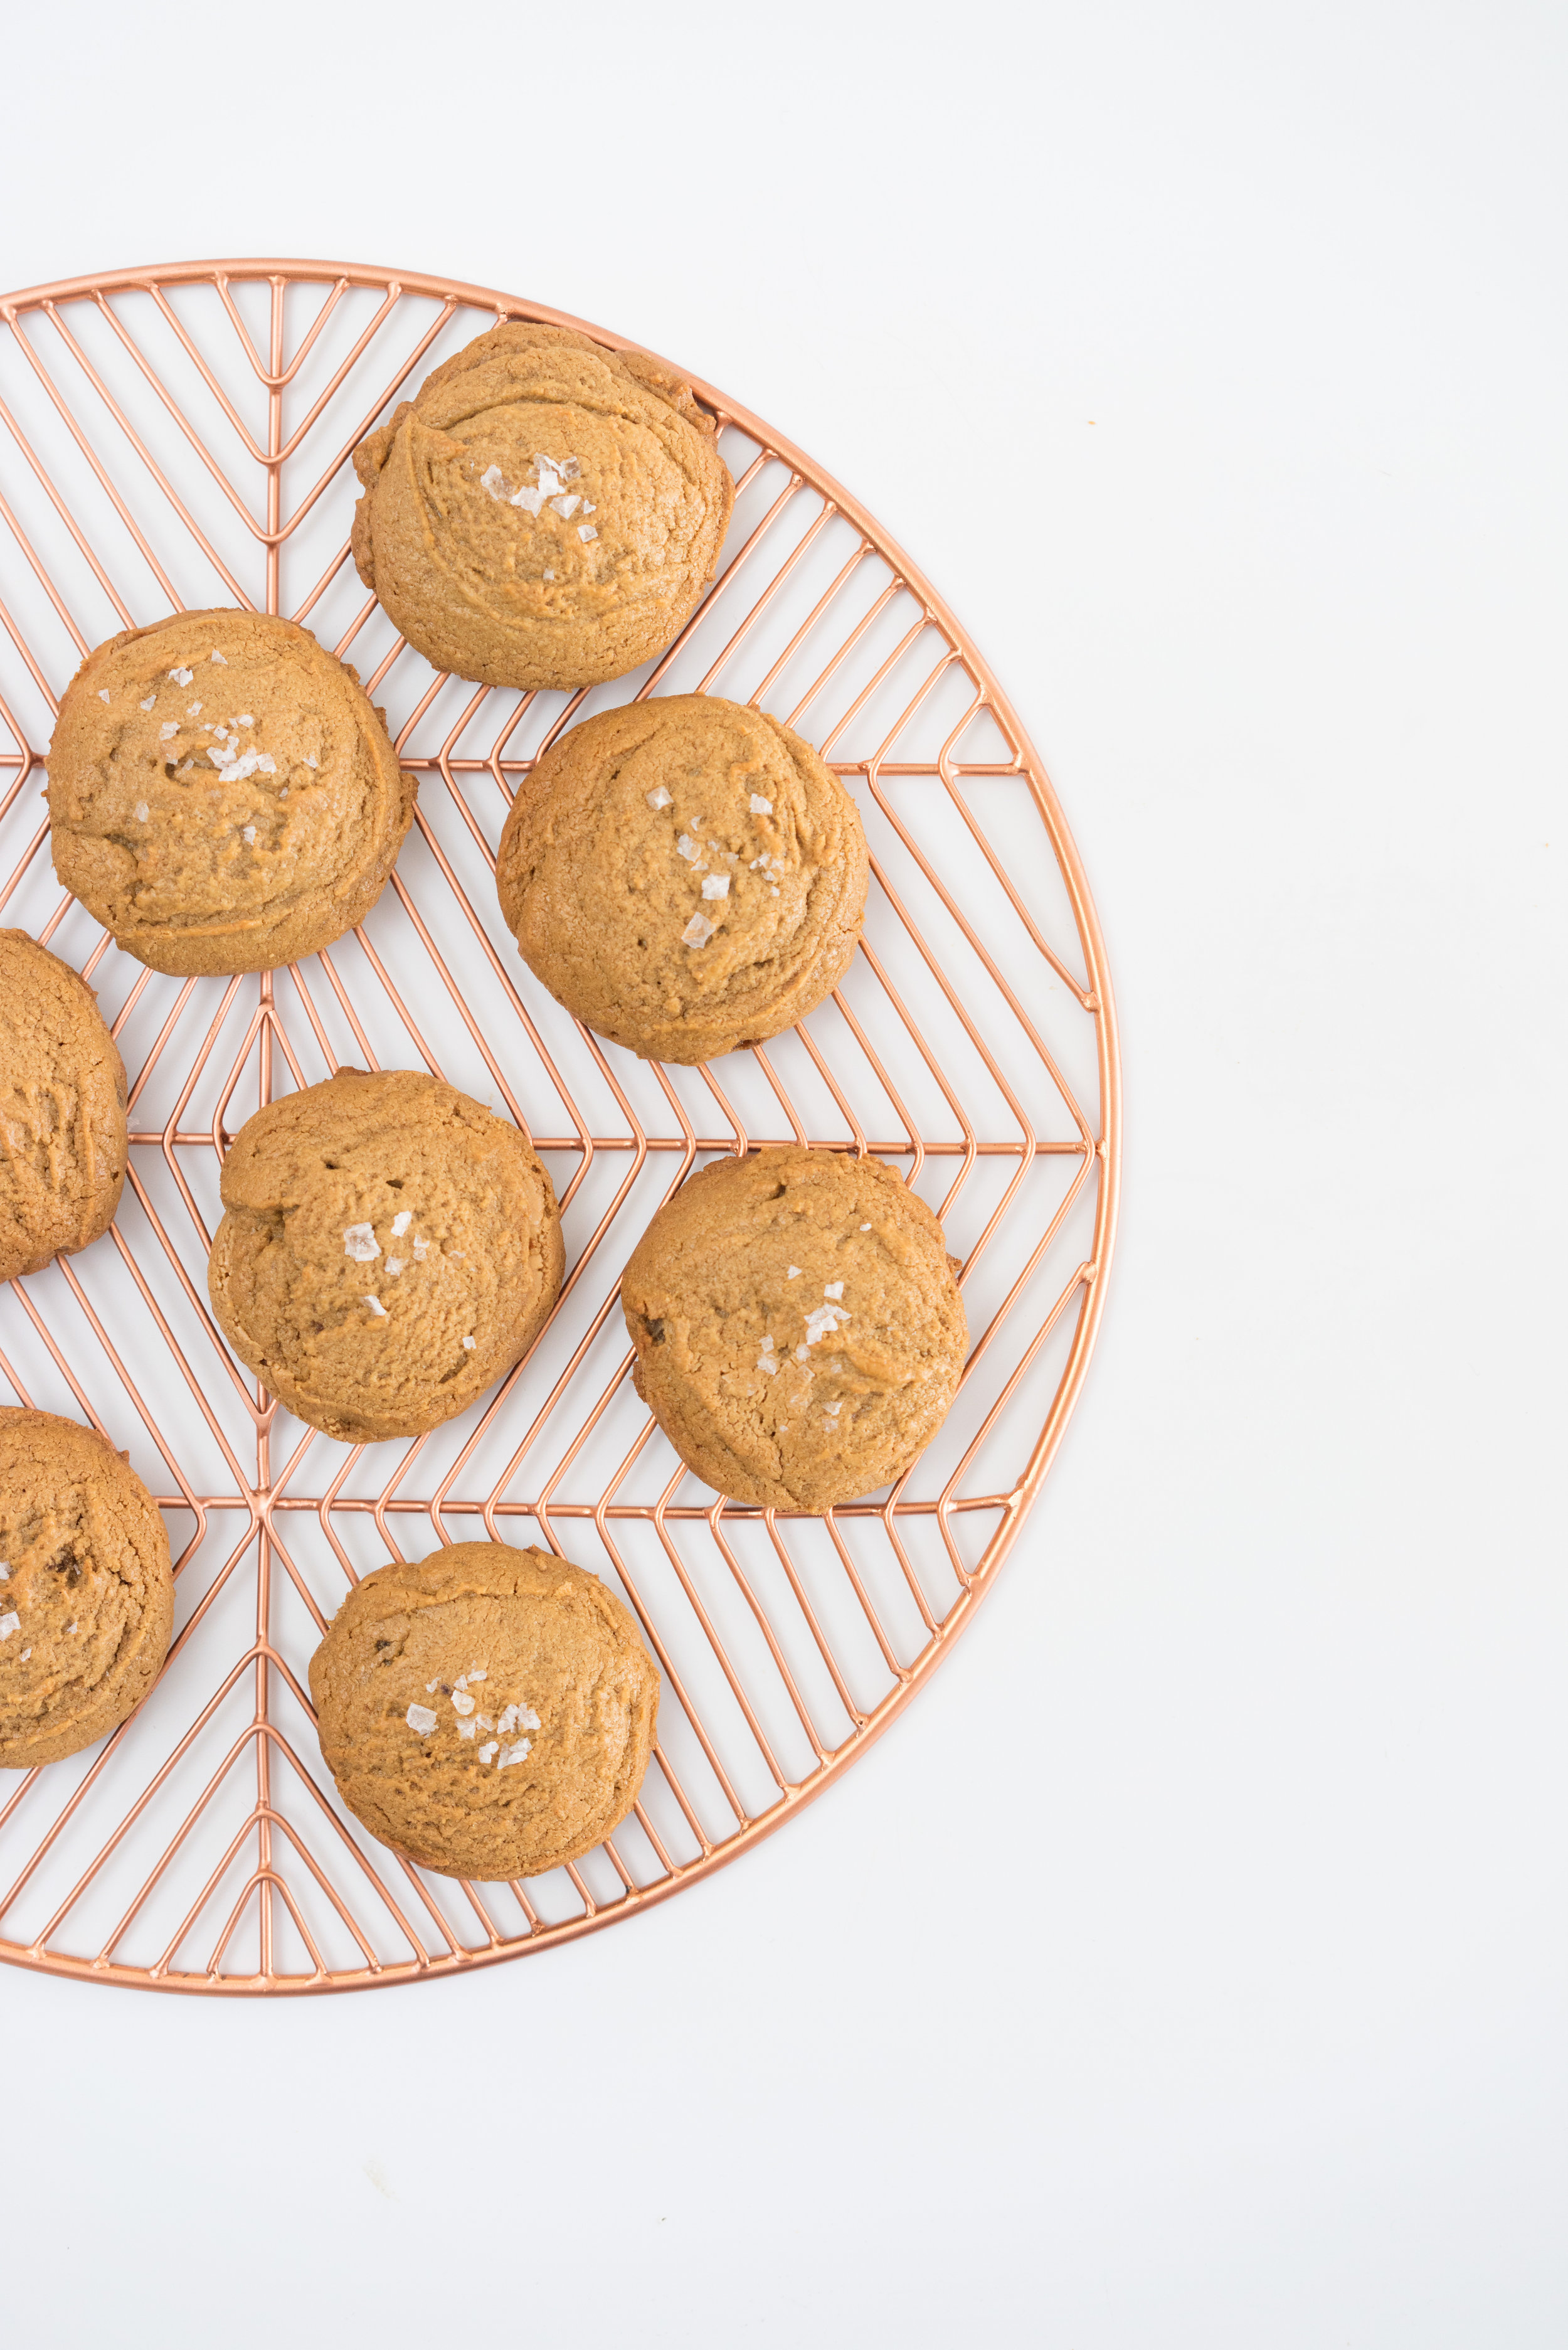 Gluten free, Dairy Free Peanut Butter Cookies - super simple, four ingredient cookies